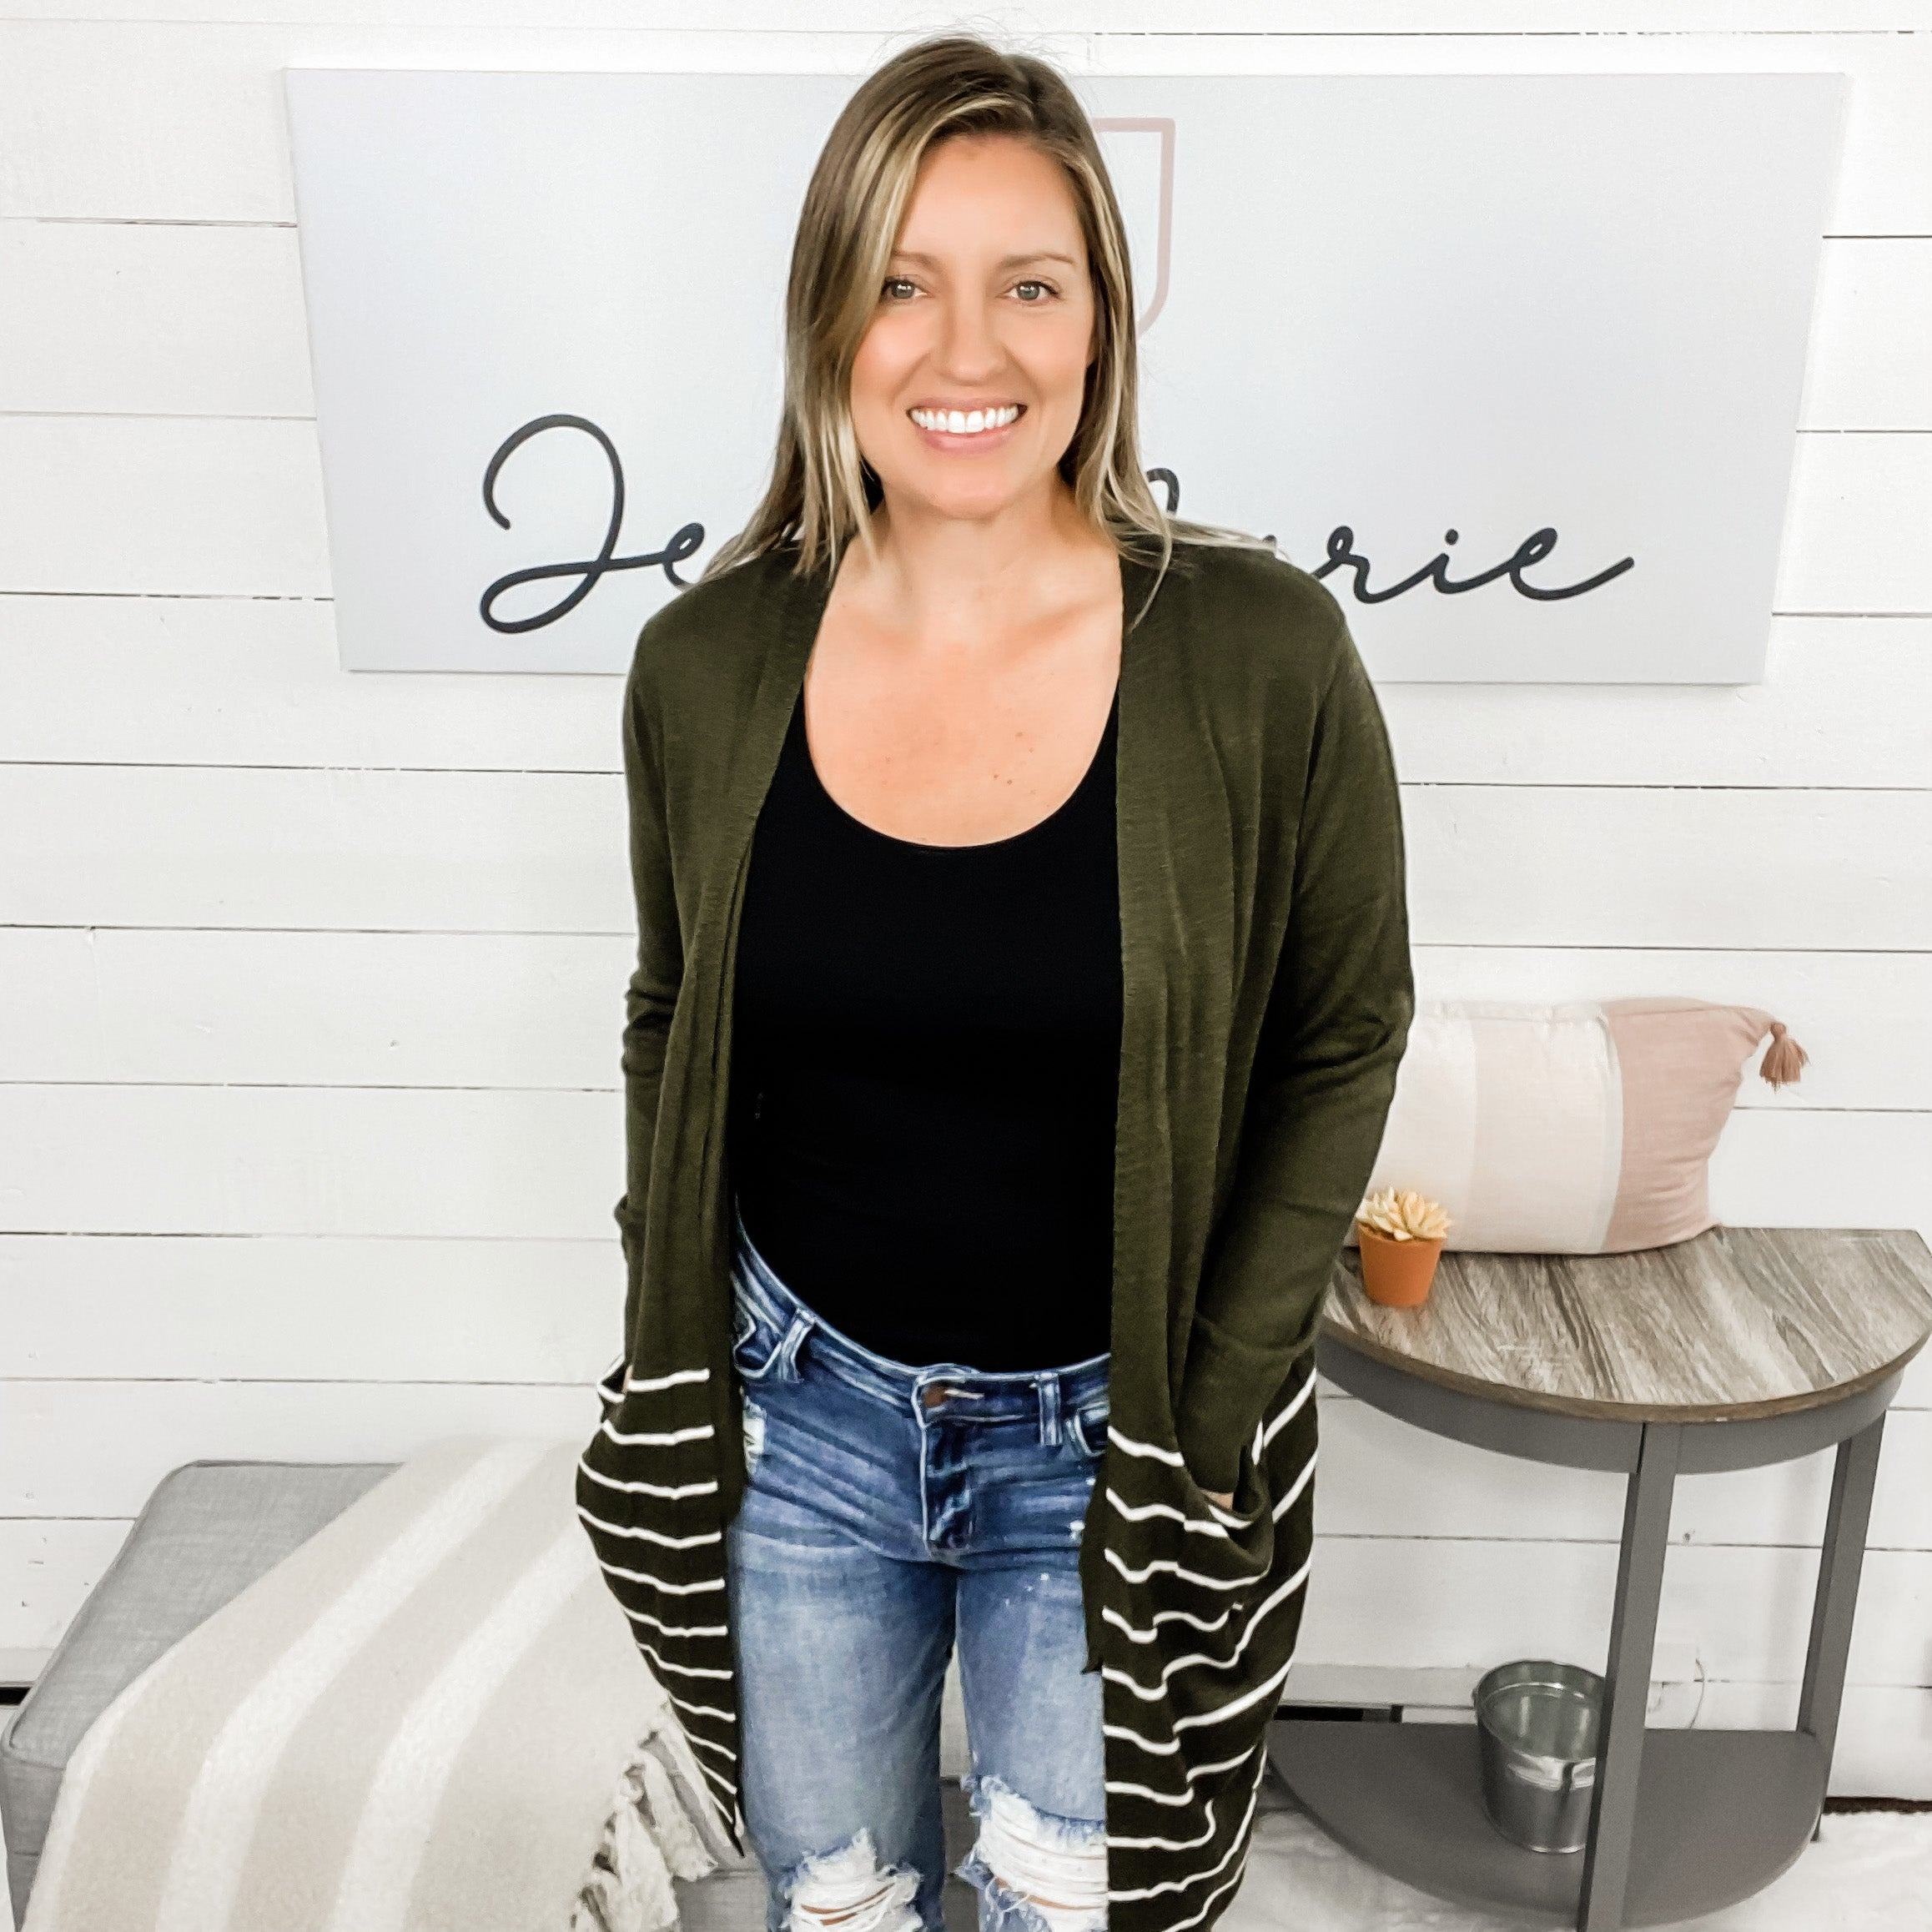 BLACK FRIDAY-Long Sleeved Open Cardigan w/ Solid Top & Striped Bottom